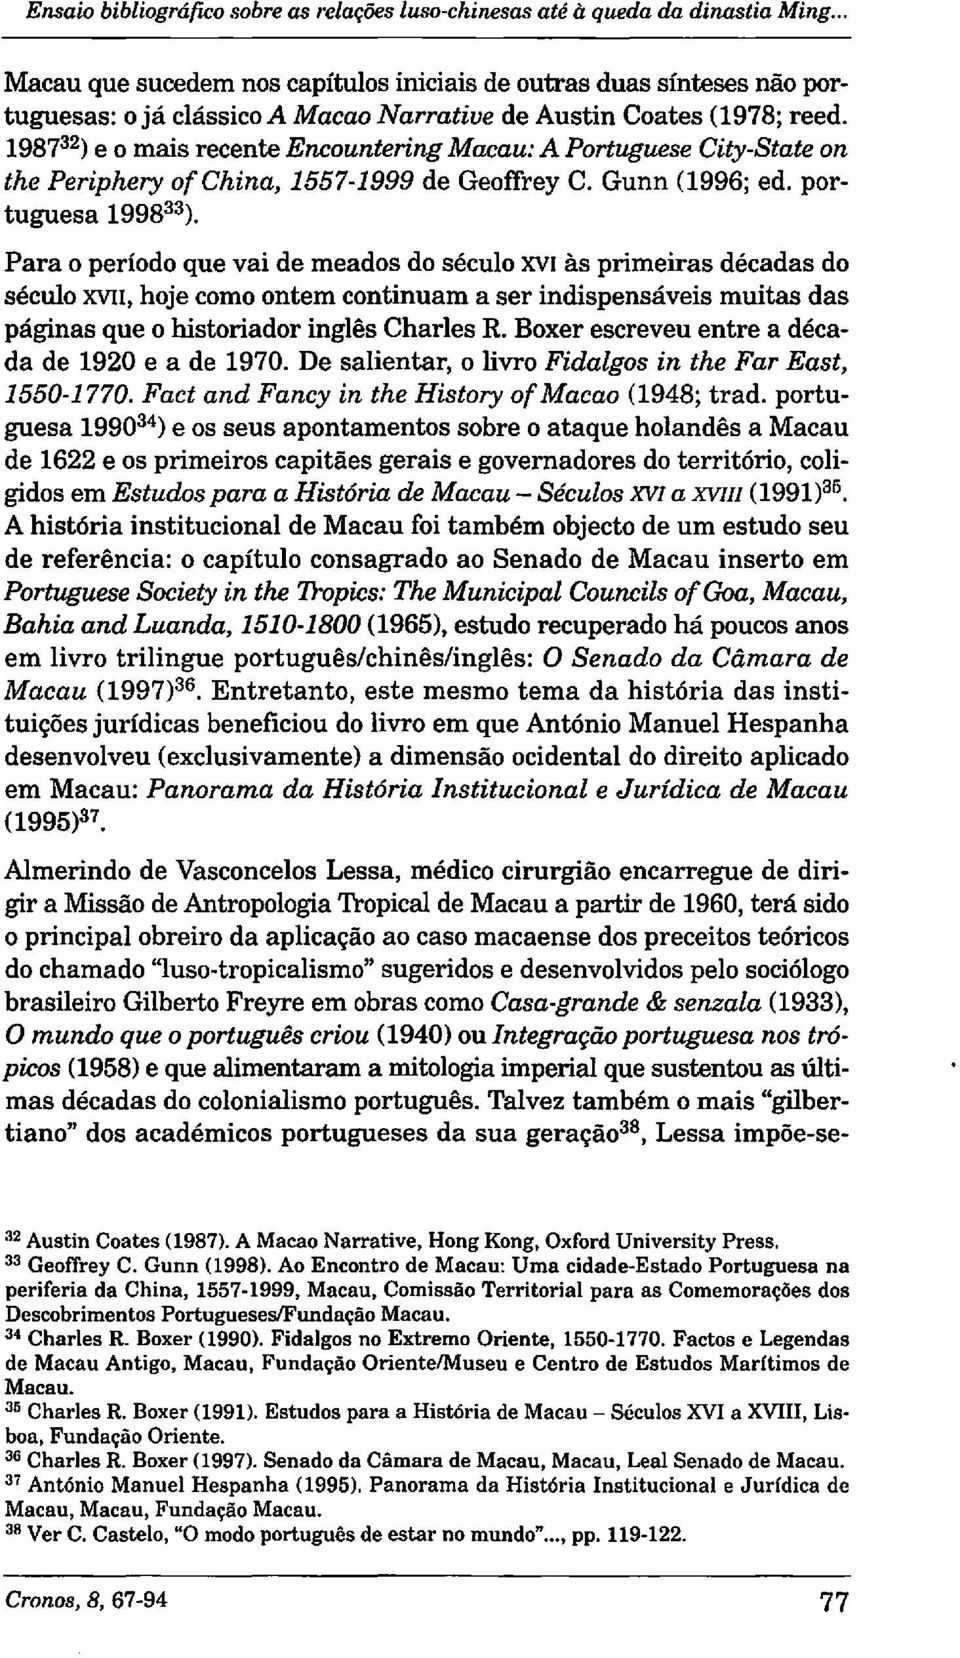 1987 32 ) e o mais recente Encountering Macau: A Portuguese City-State on the Periphery ofchina, 1557-1999 de Geoffrey C. Gunn (1996; ed. portuguesa 1998 33 ).